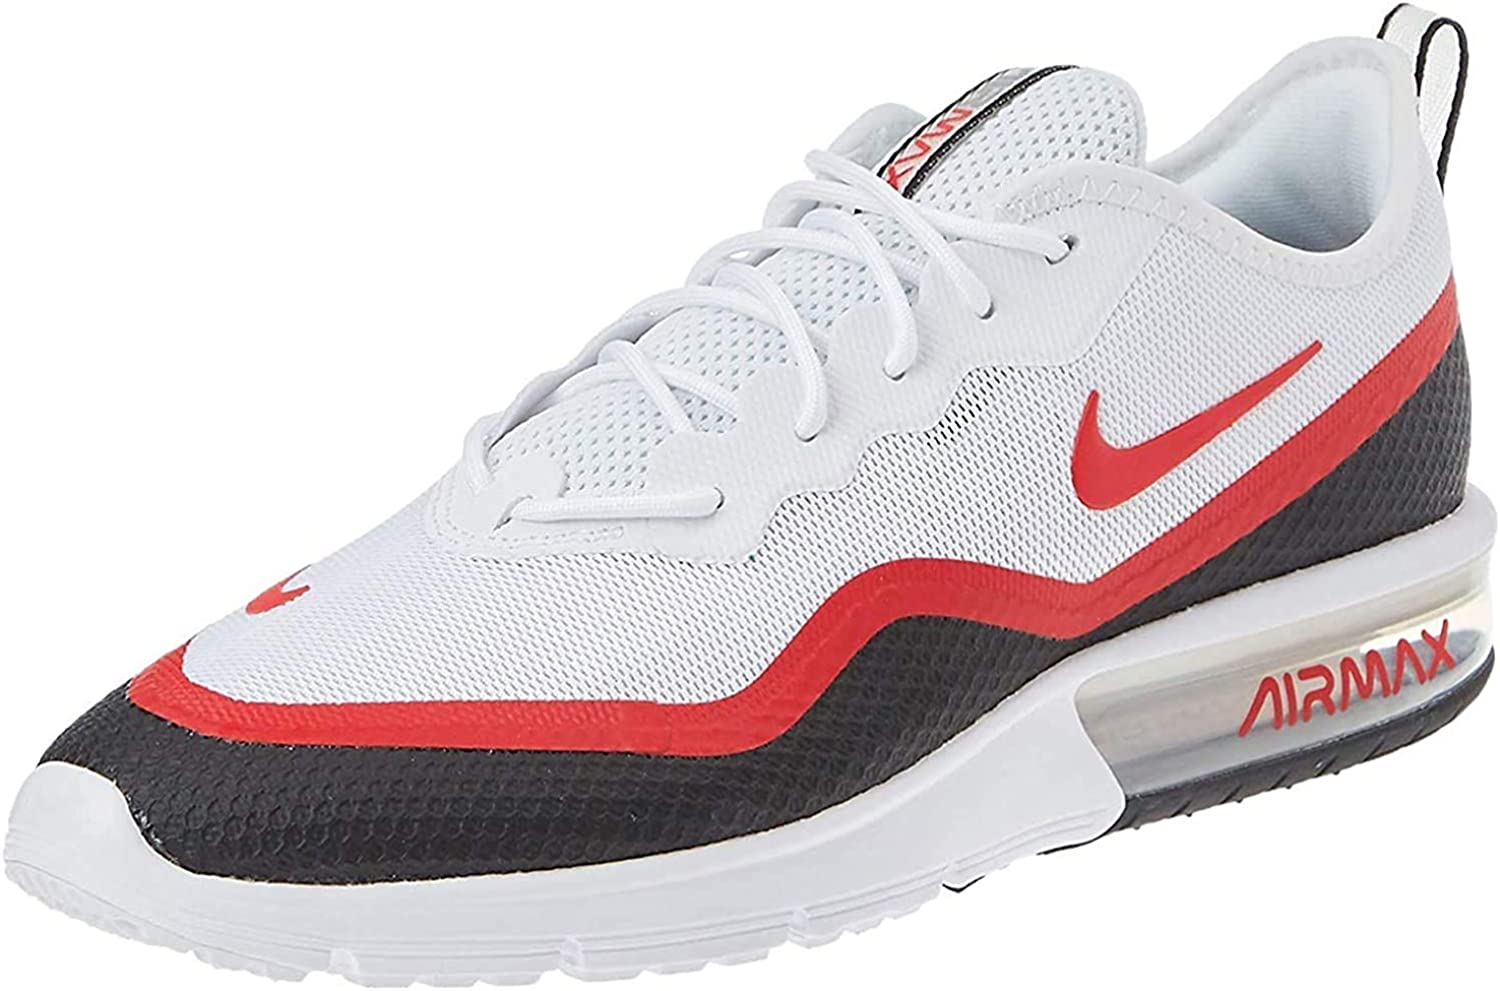 Nike Air Max Sequent 4.5 Se, Chaussures d'Athlétisme Homme Multicolore White University Red Black Wolf Grey 000